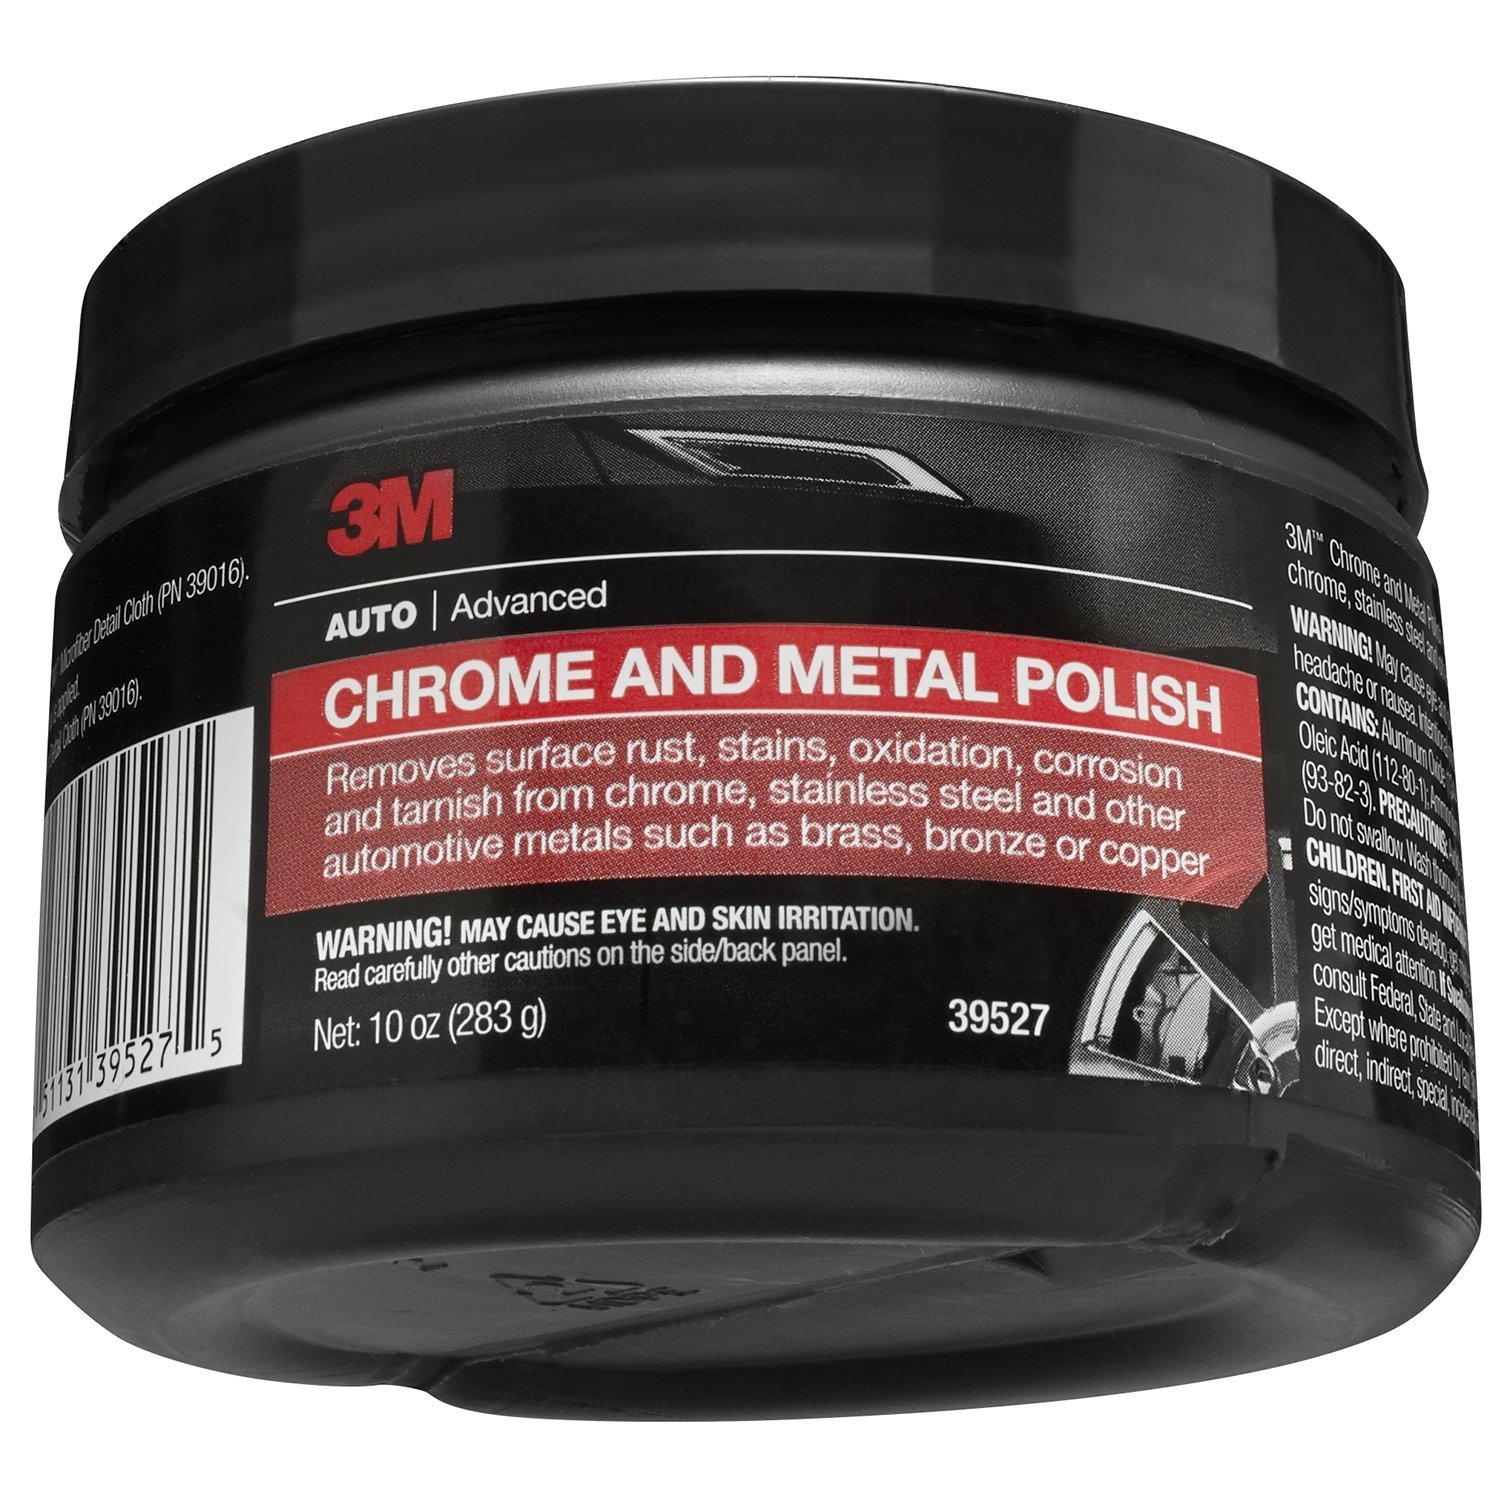 Best Chrome Polish 2019 - Cleaner For All Applications